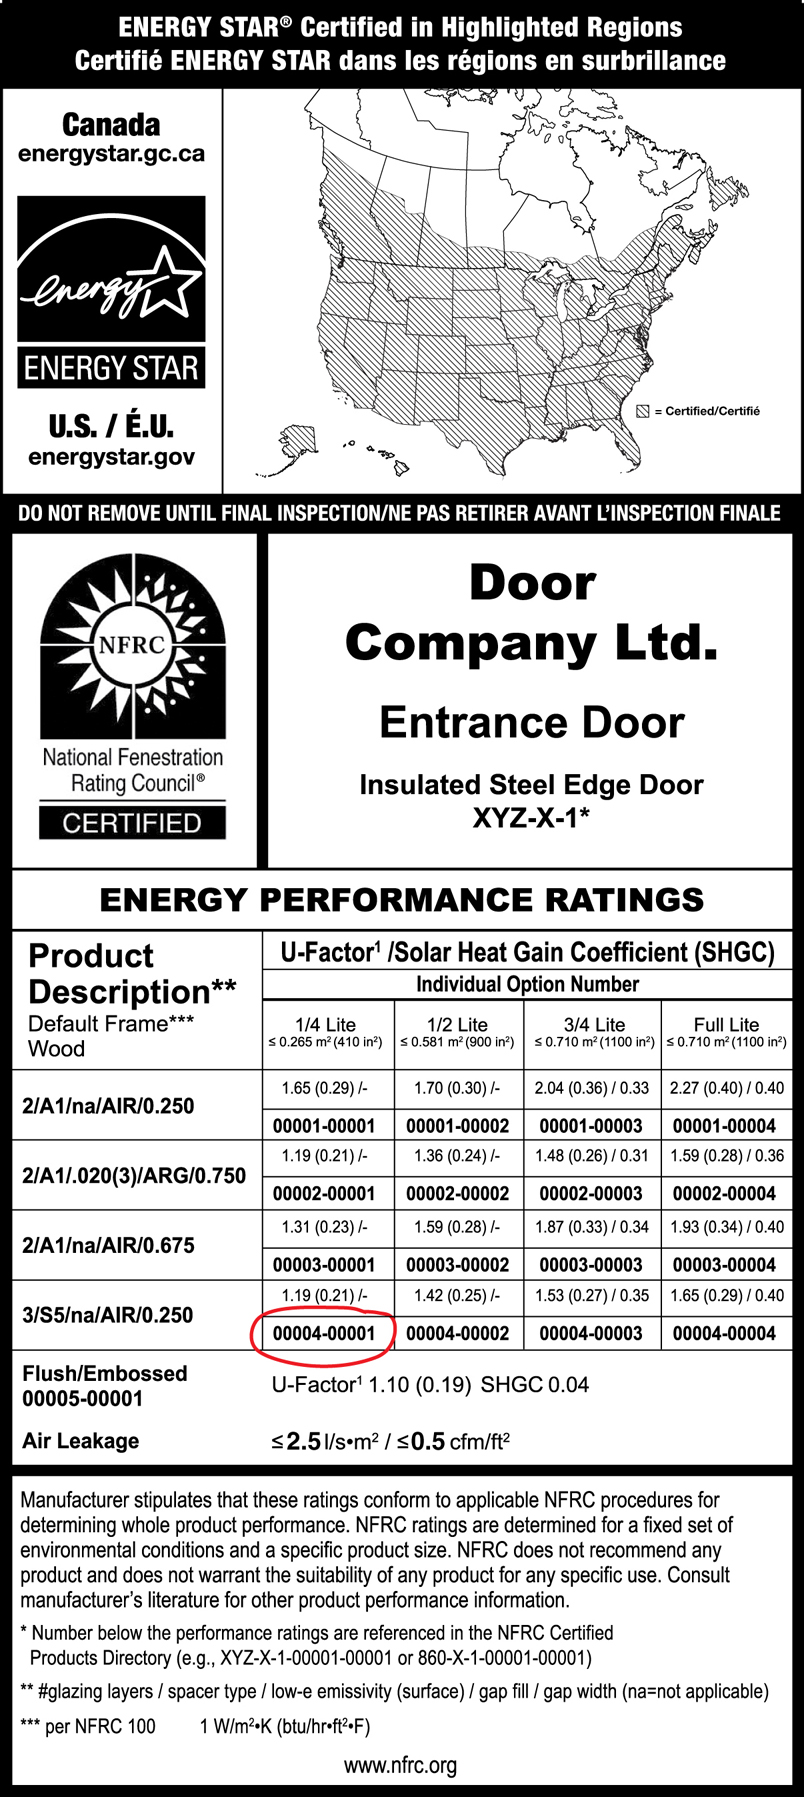 Sample ENERGY STAR / NFRC temporary label for a hinged door. The ENERGY STAR portion has an ENERGY STAR certification mark and a map of Canada / U.S.A. indicating that the product is certified for Zones 1 and 2 in Canada and all of the zones in the U.S.A. The NFRC portion has a NFRC certification mark, brand name, product line code and the product's specific performance ratings for each glazing option.